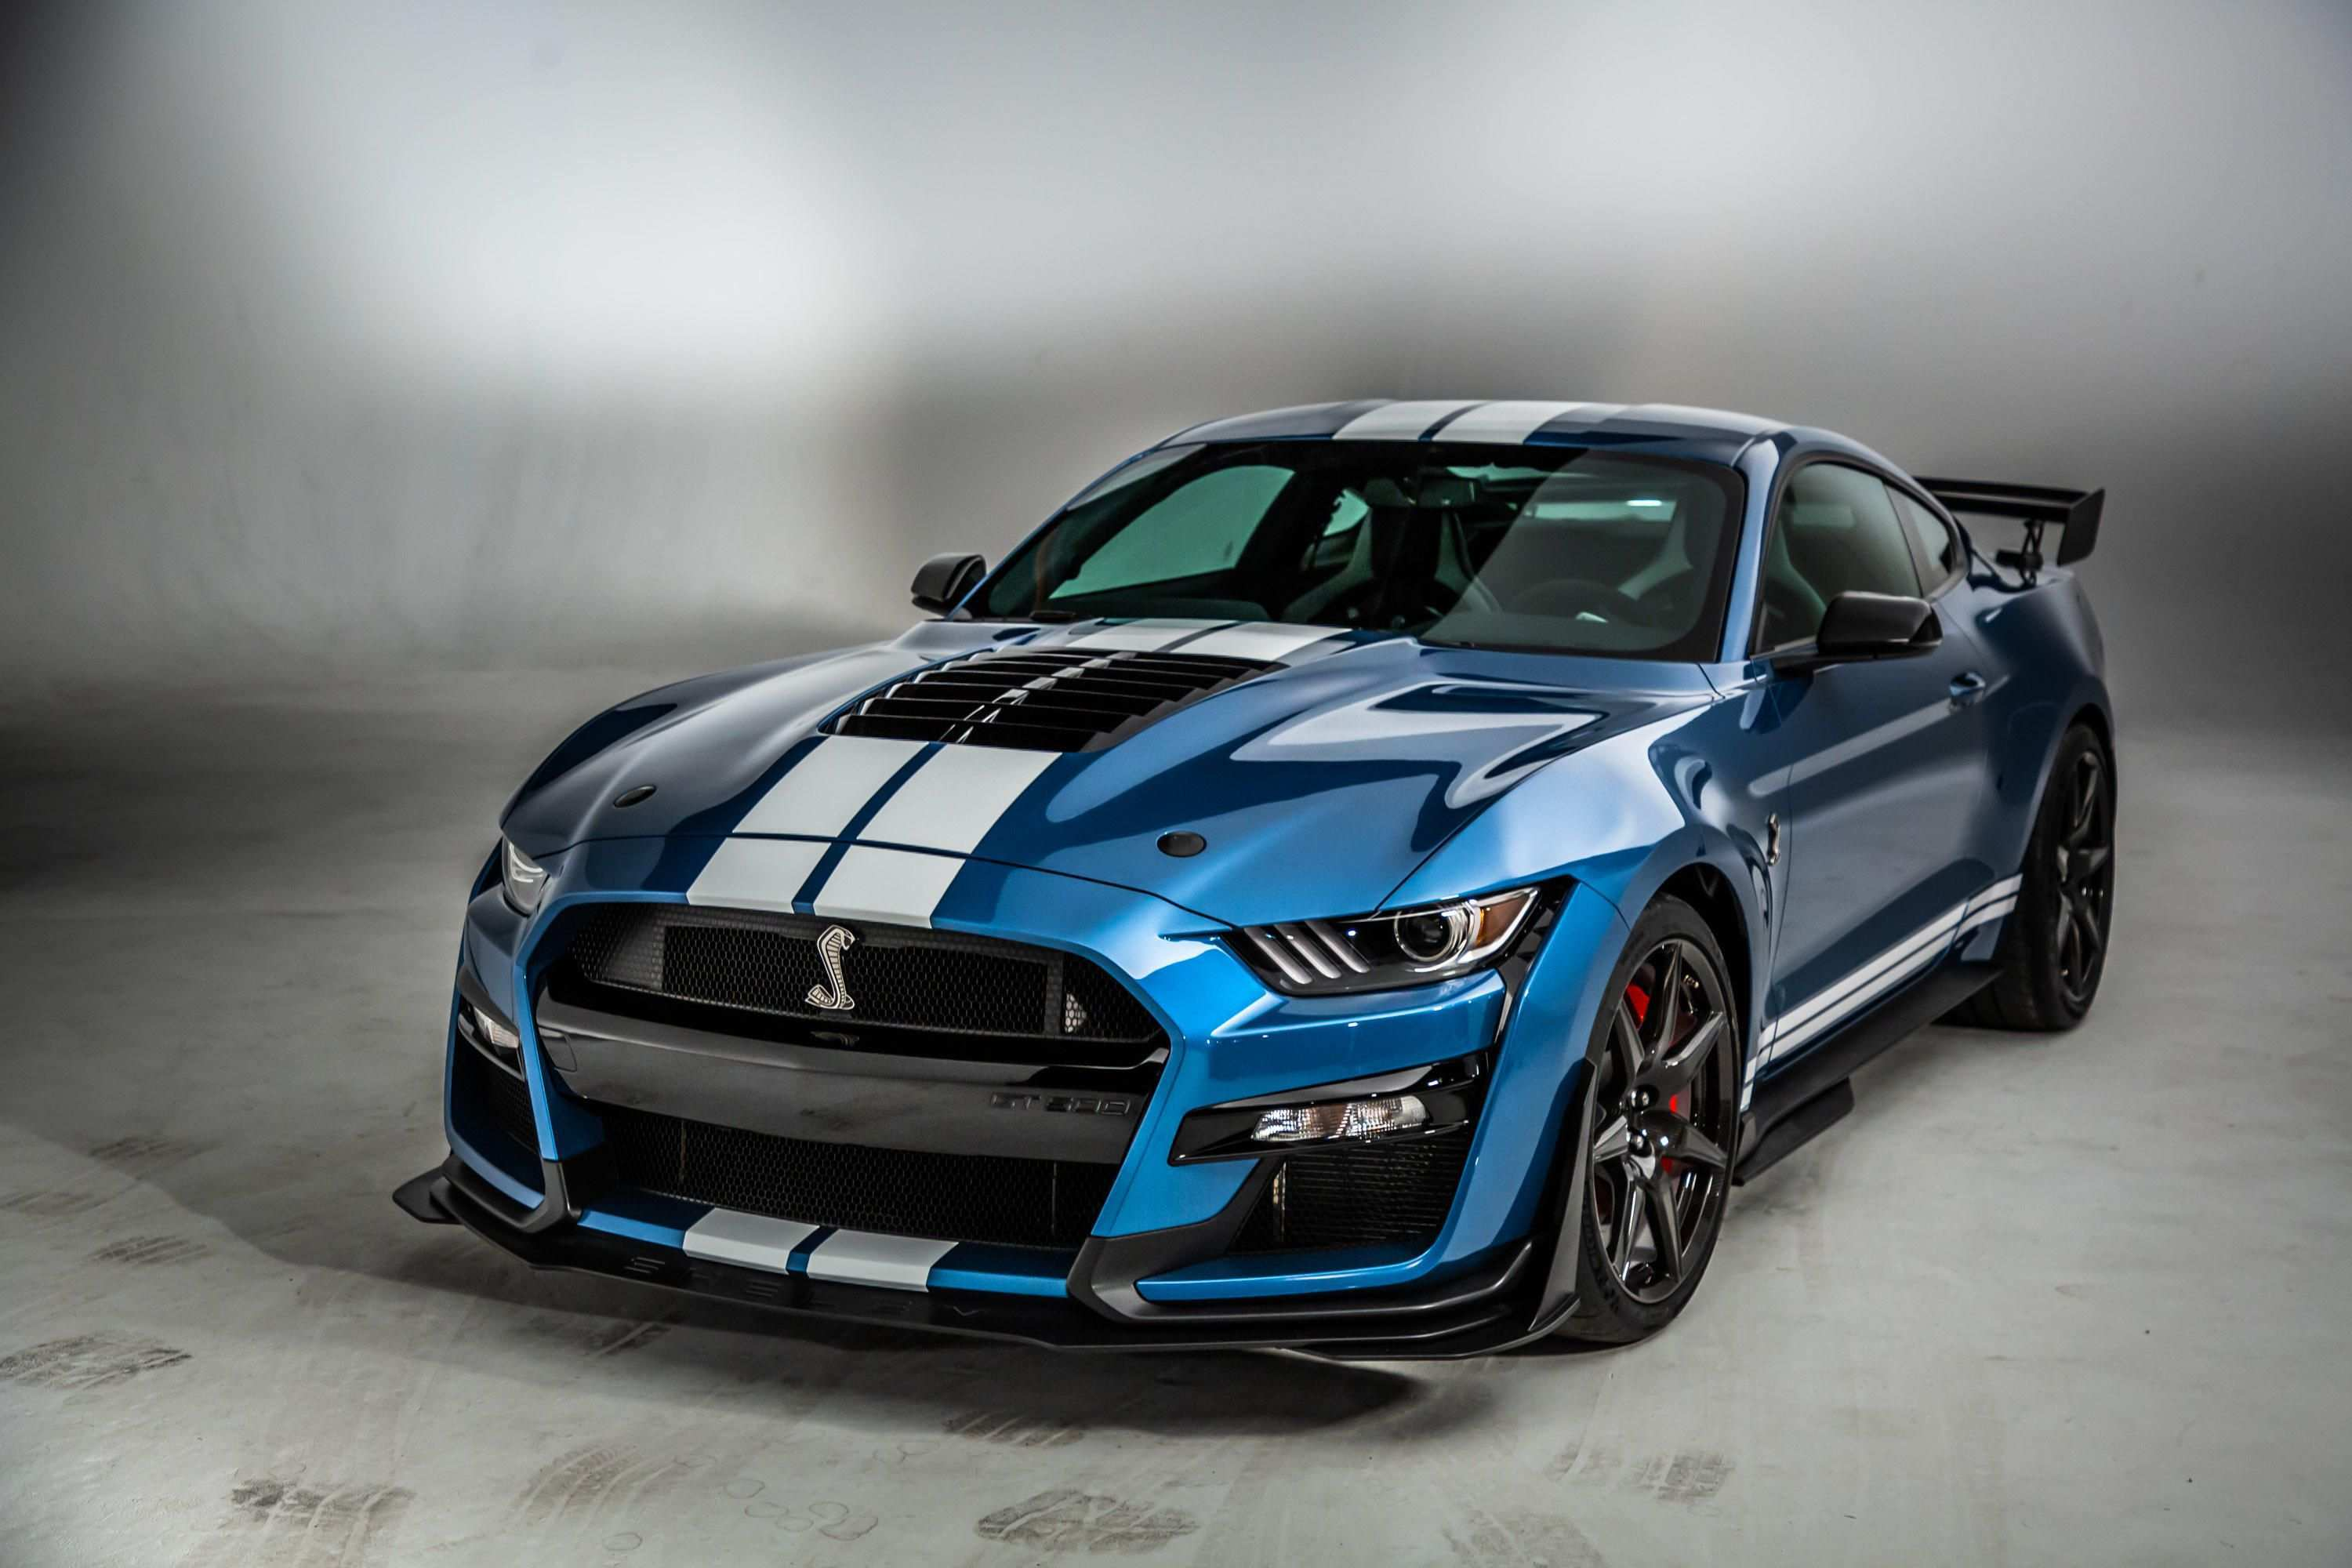 49 The 2020 Ford Mustang Gt Photos